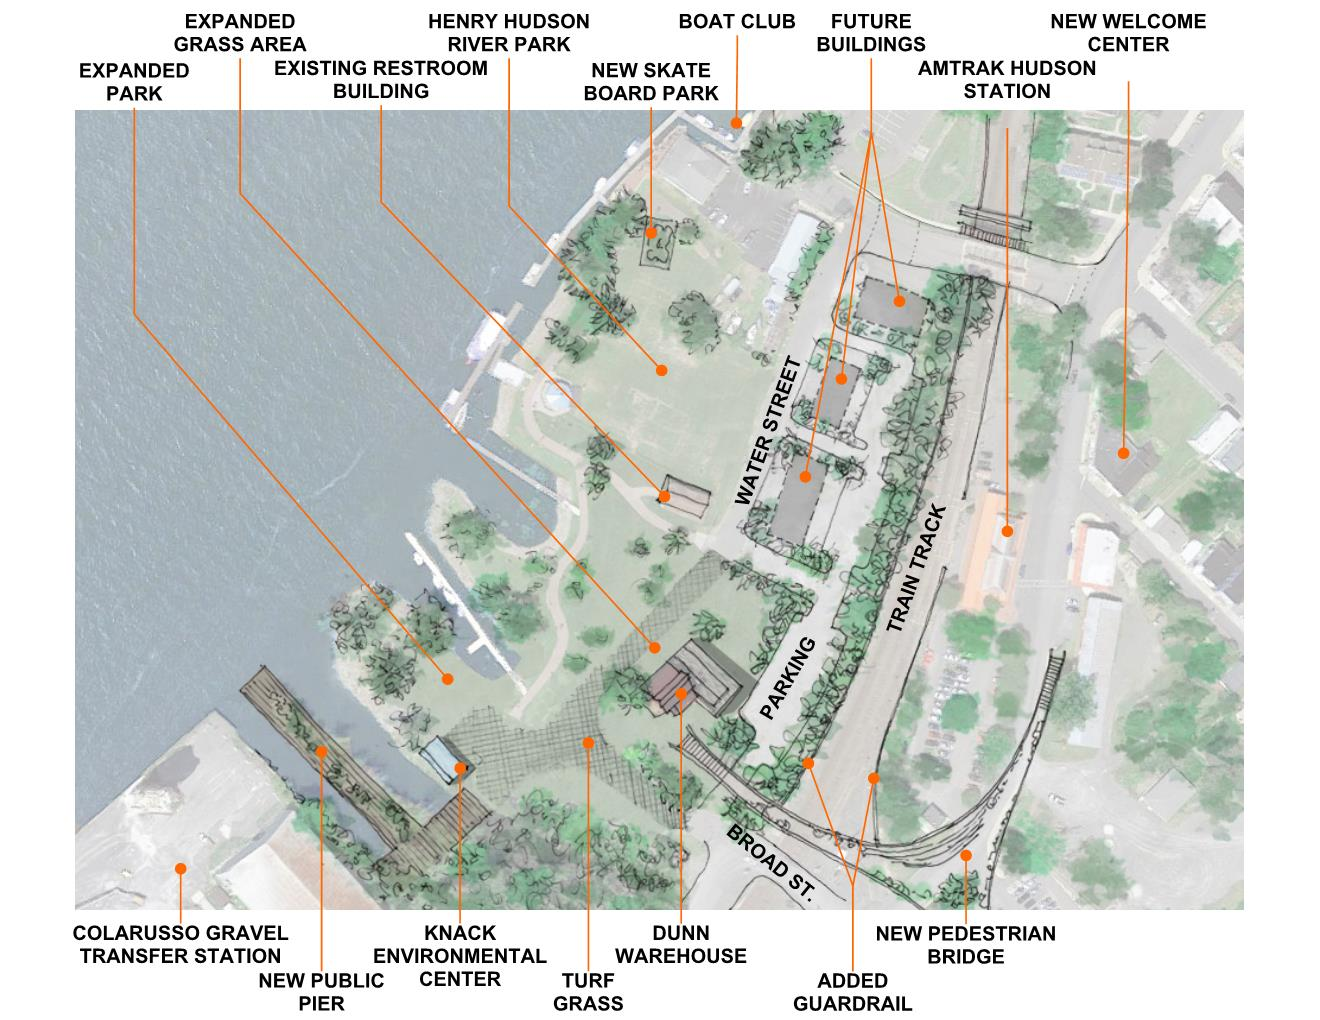 Dunn_Site Plan Collage_2017.06.14-Notes_web.jpg